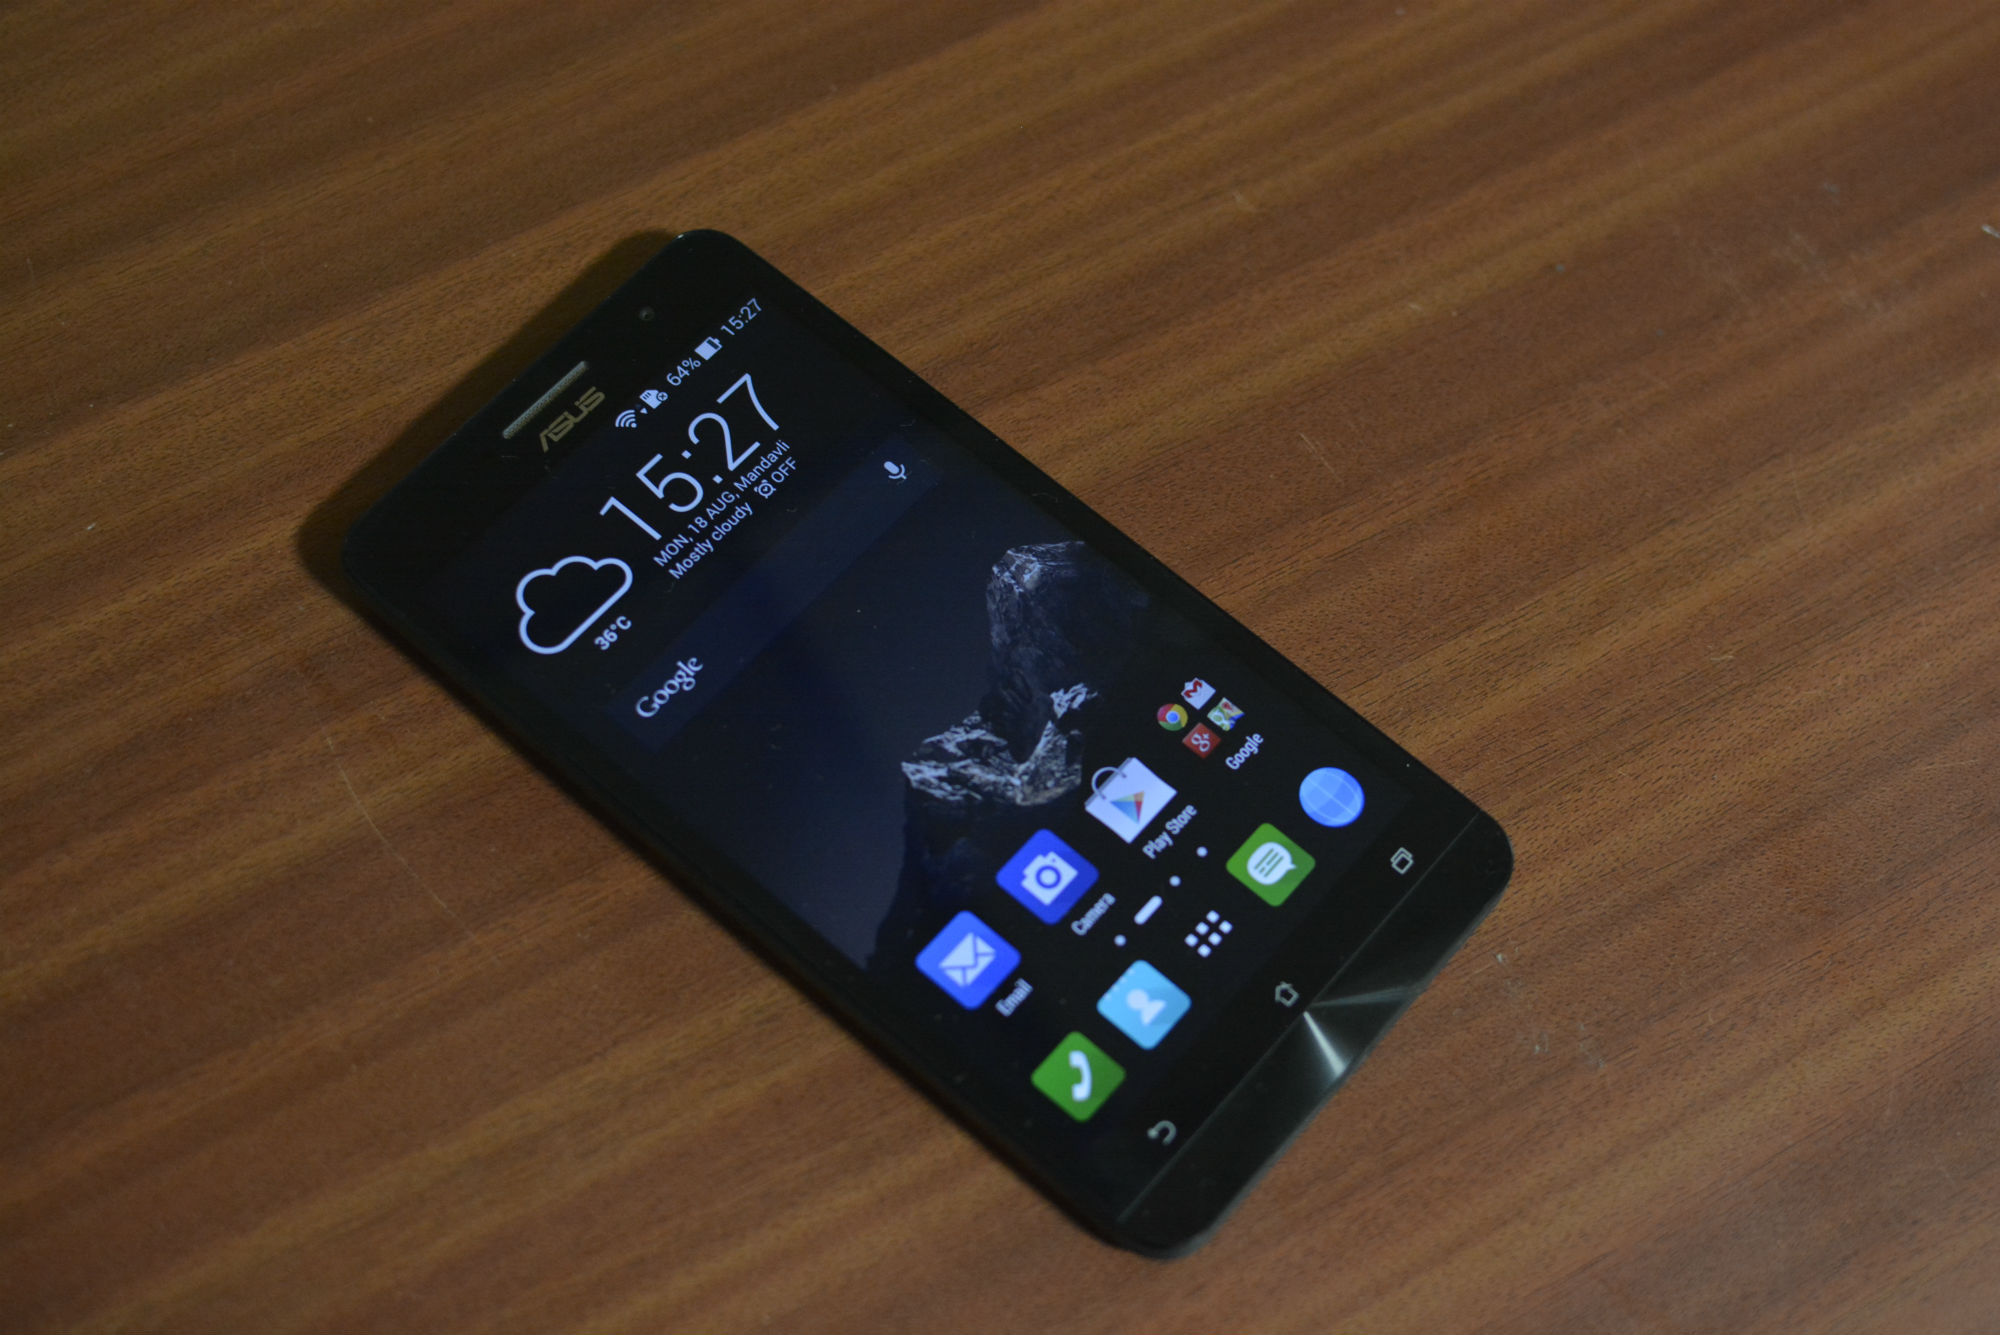 Smartphone Asus Zenfone 6: a review of the model, specifications and customer reviews 64